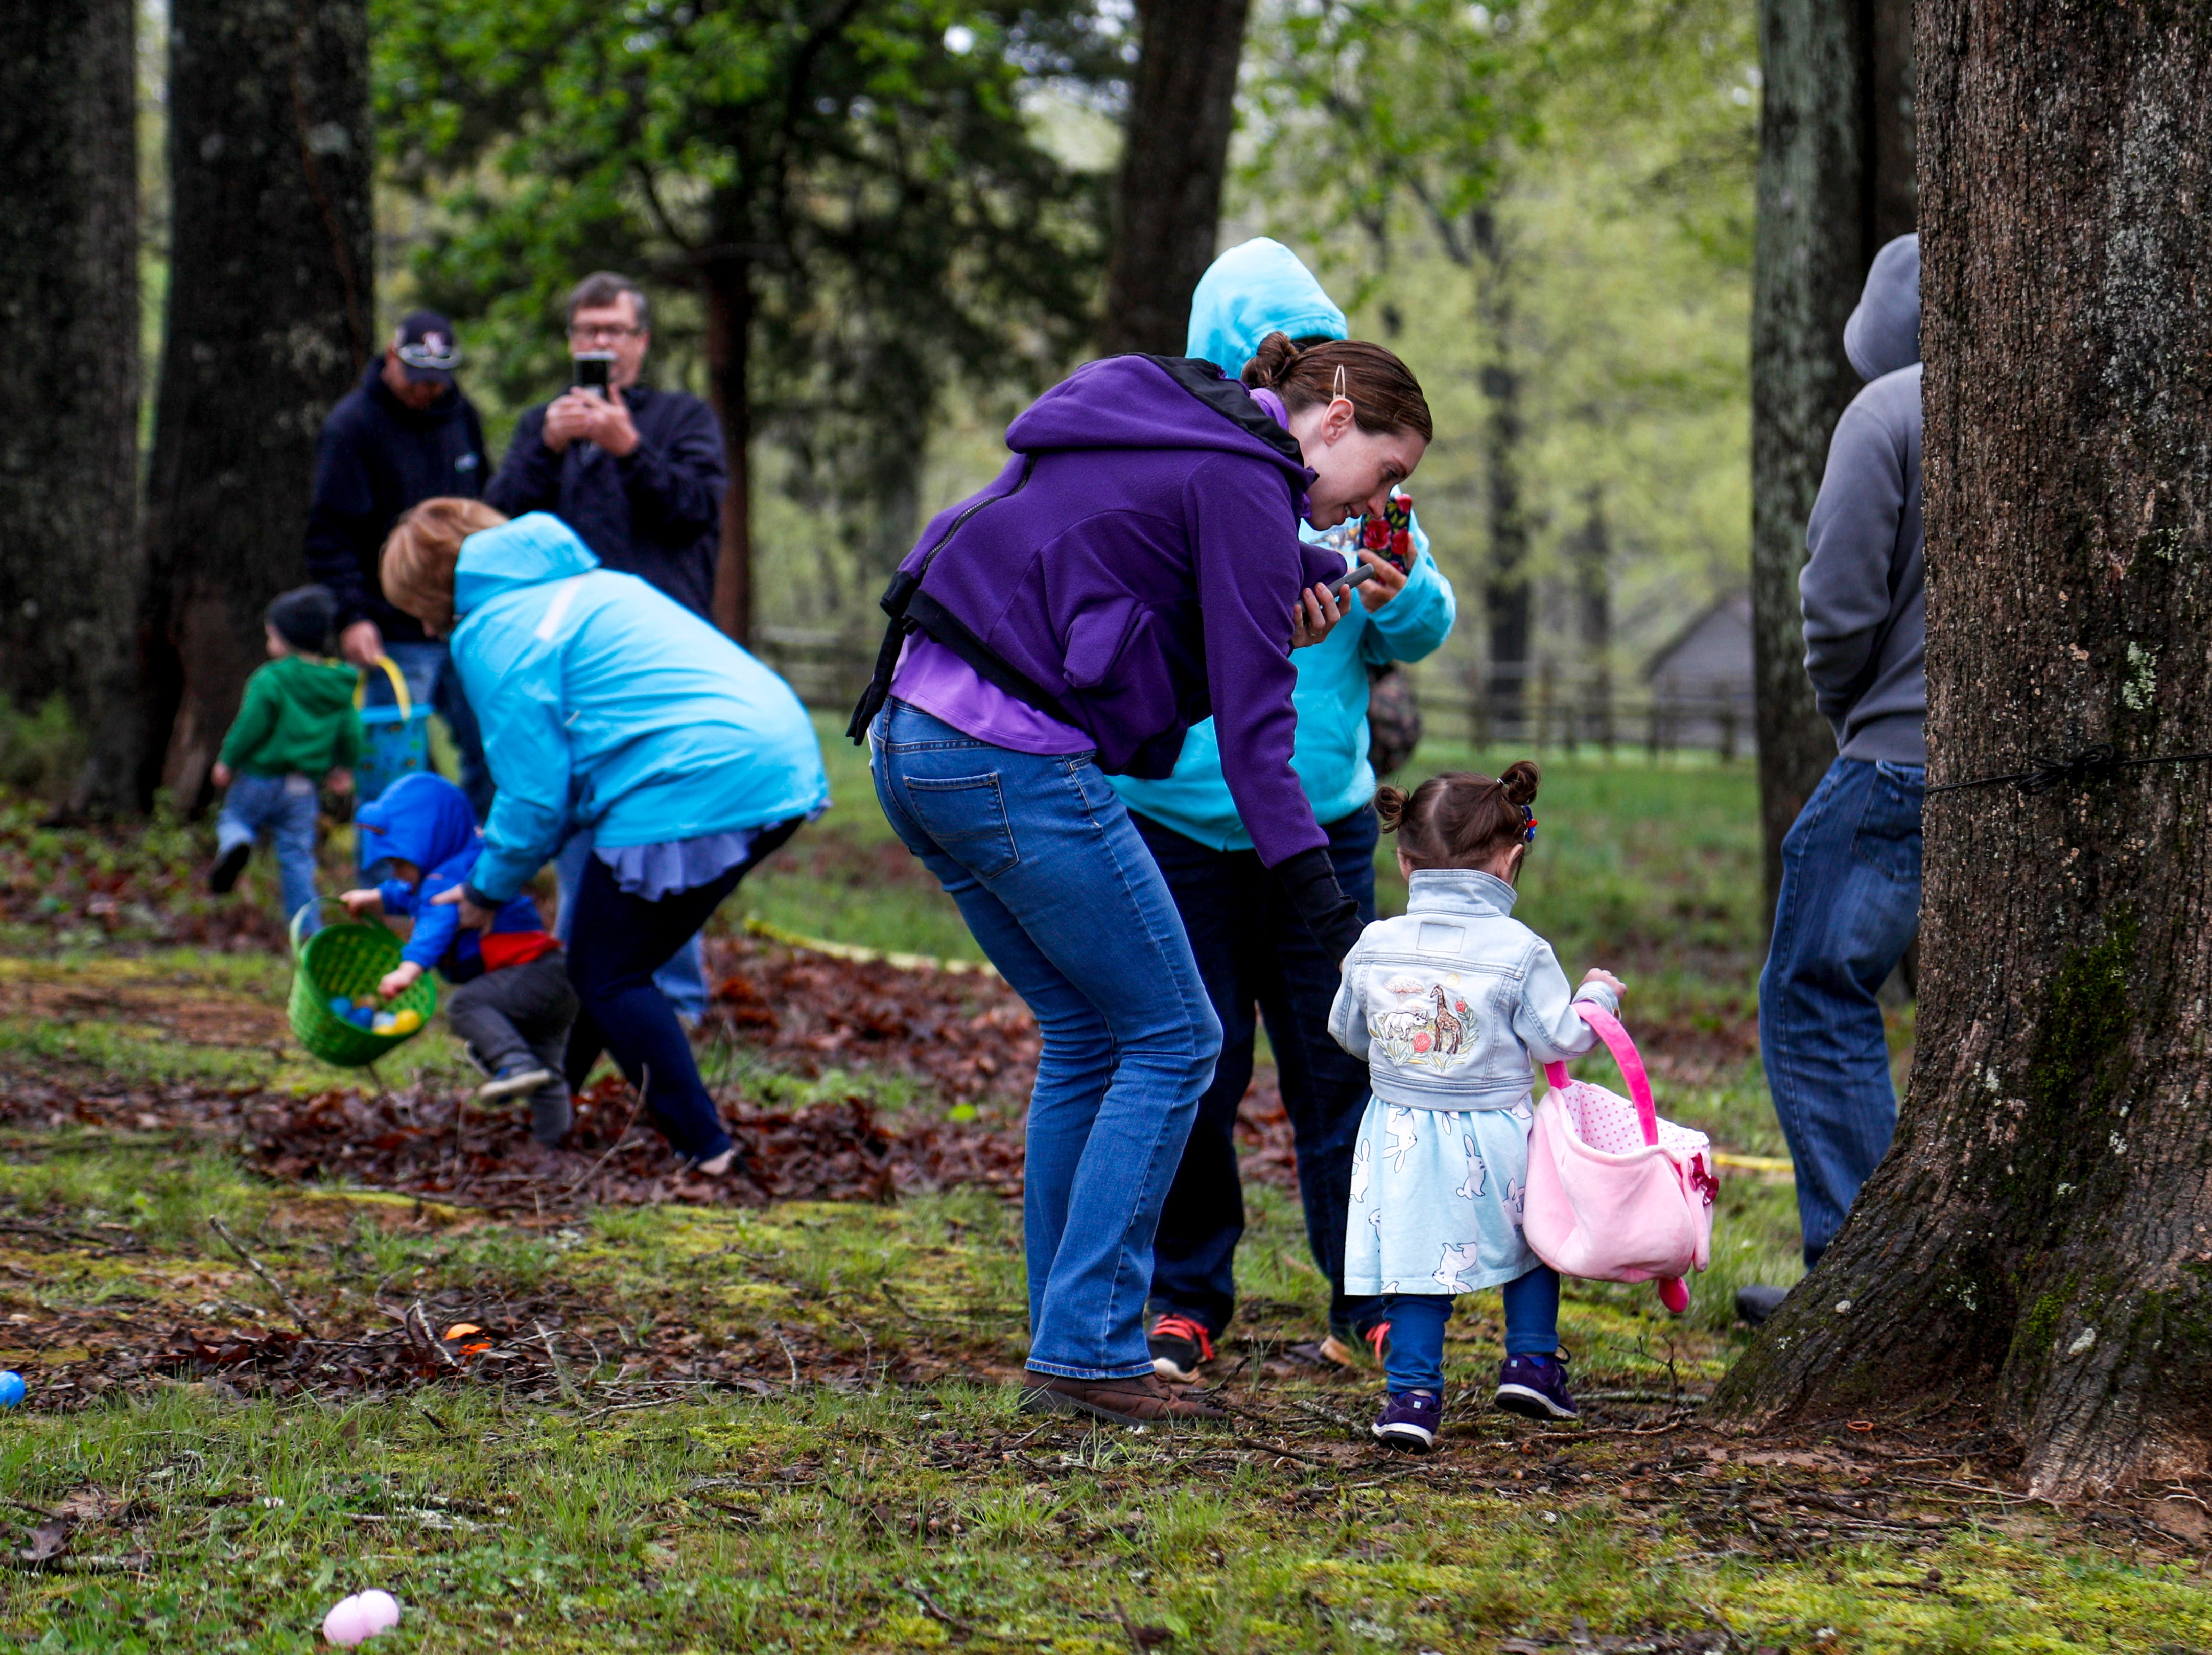 Families search for eggs together at the annual Easter egg hunts at Historic Collinsville in Clarksville, Tenn., on Saturday, April 20, 2019.